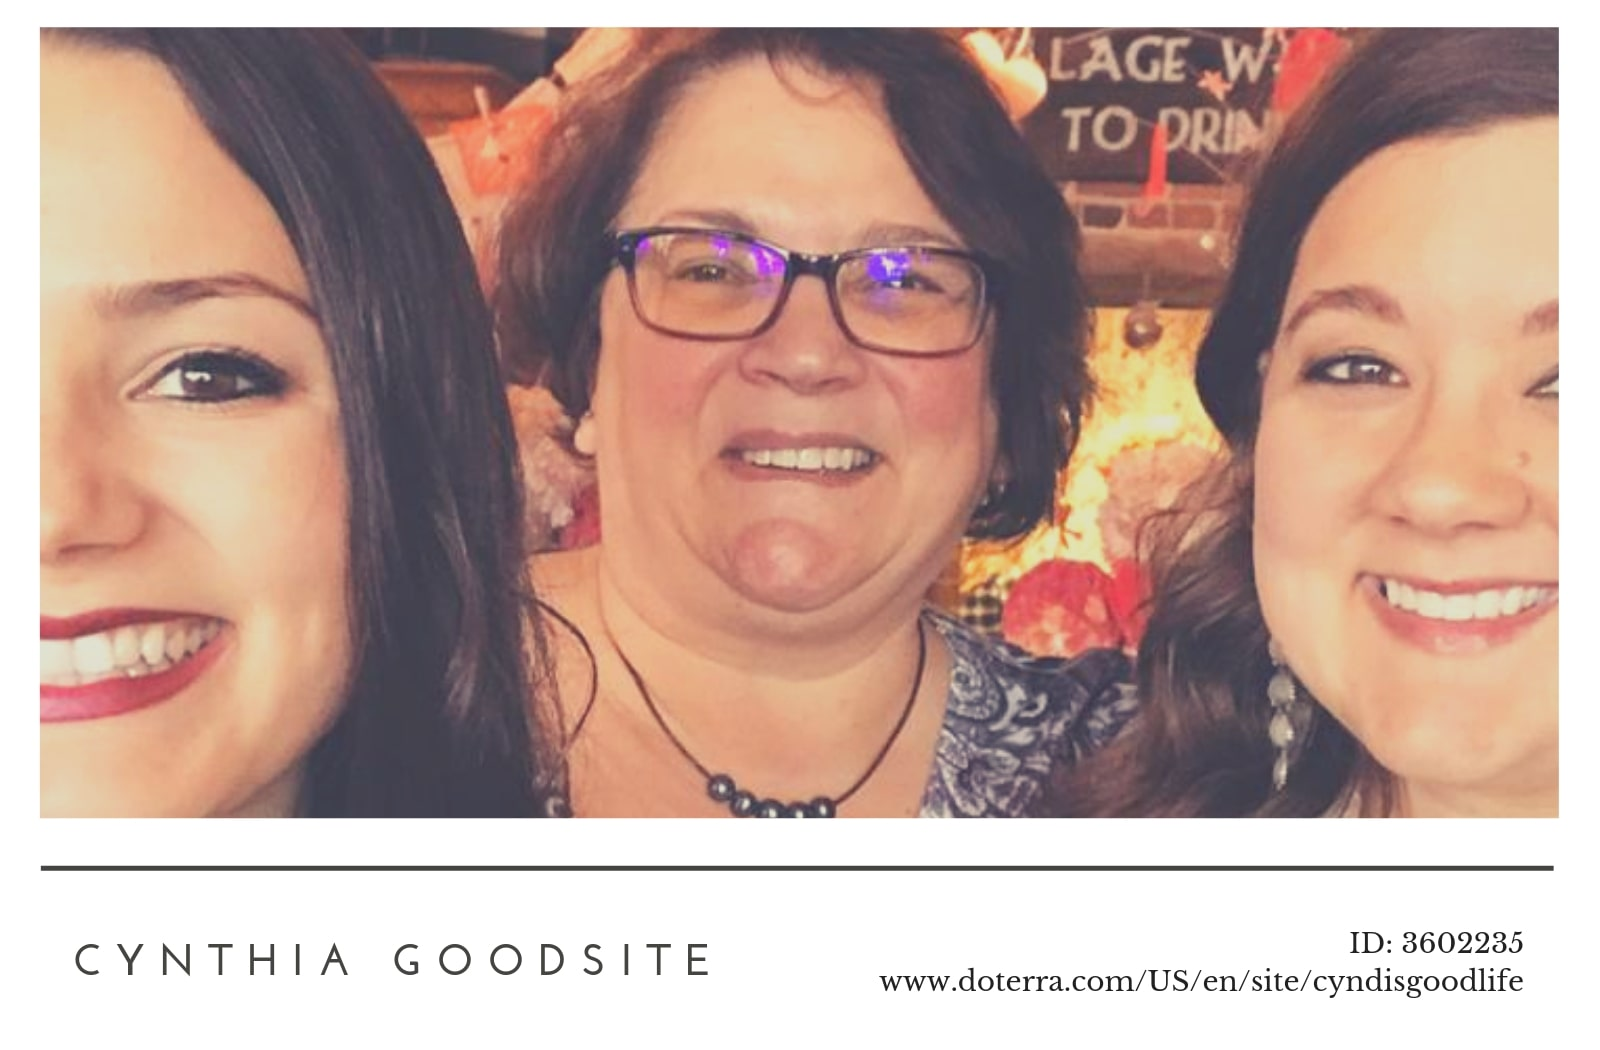 Doterra independent product consultant Cyndi Goodsite